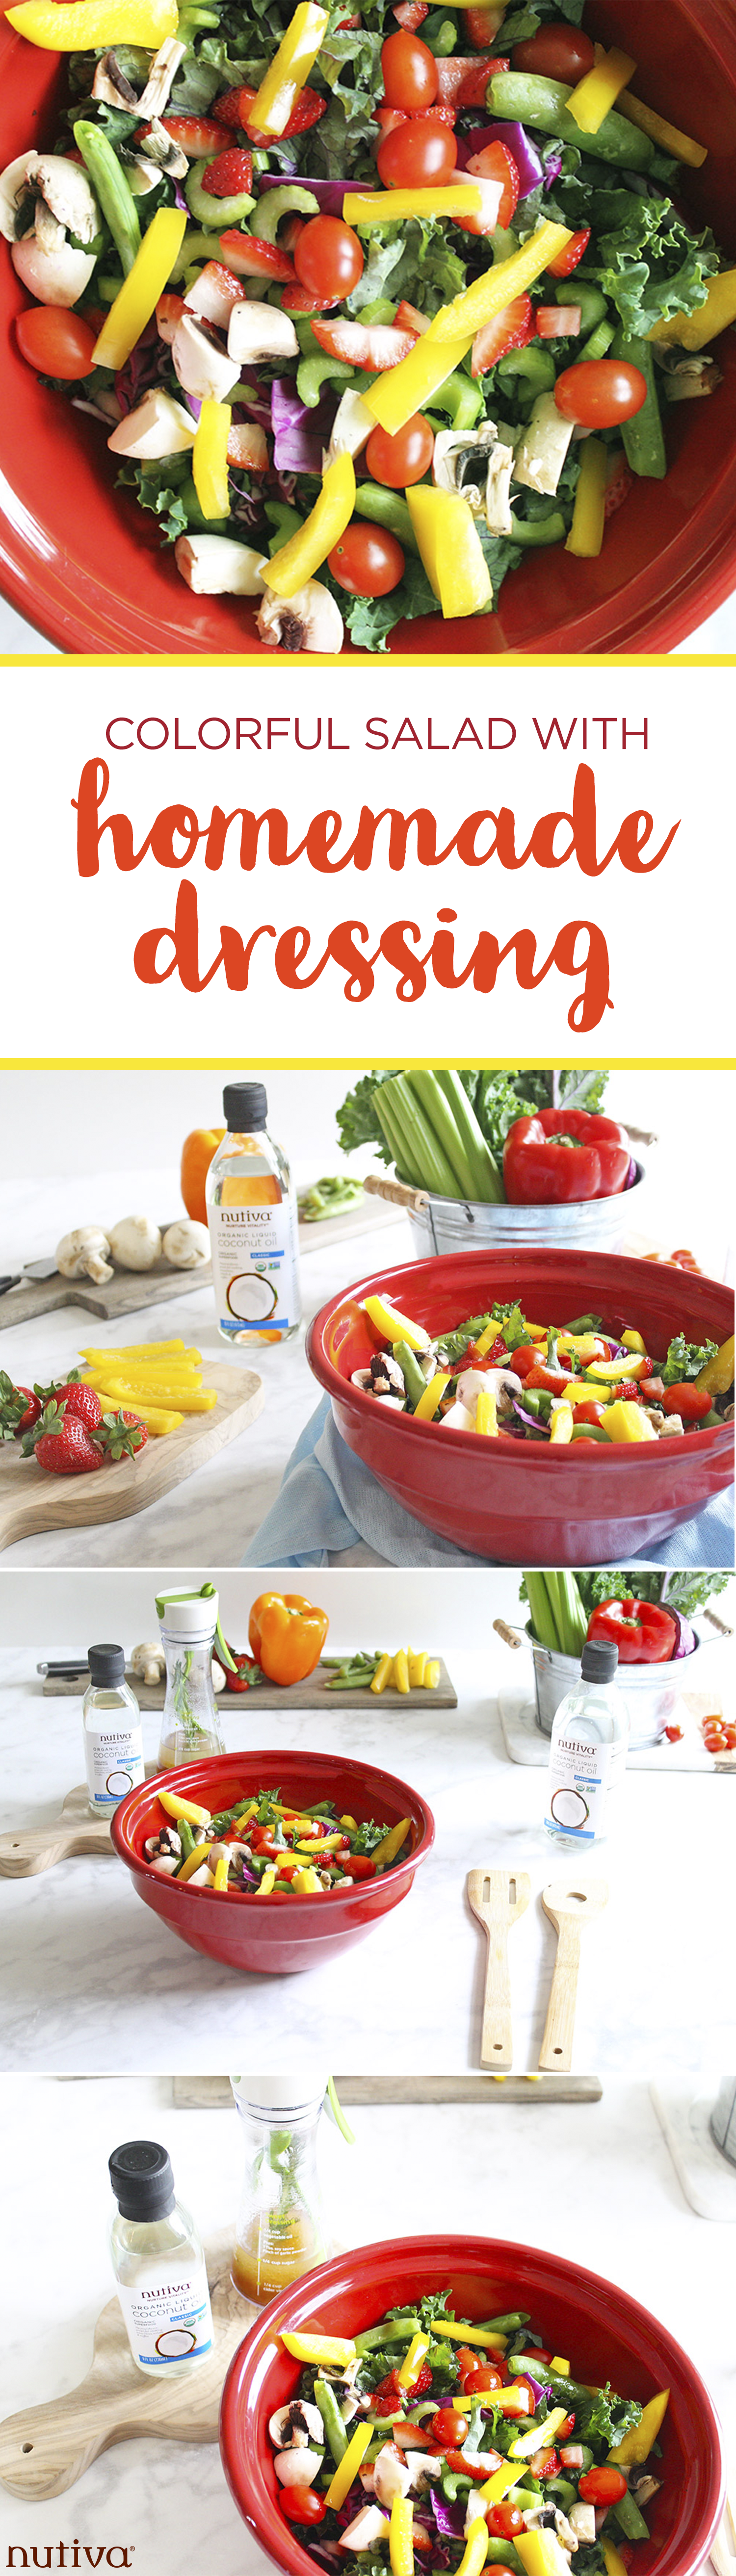 Homemade Vinaigrette Salad Dressing